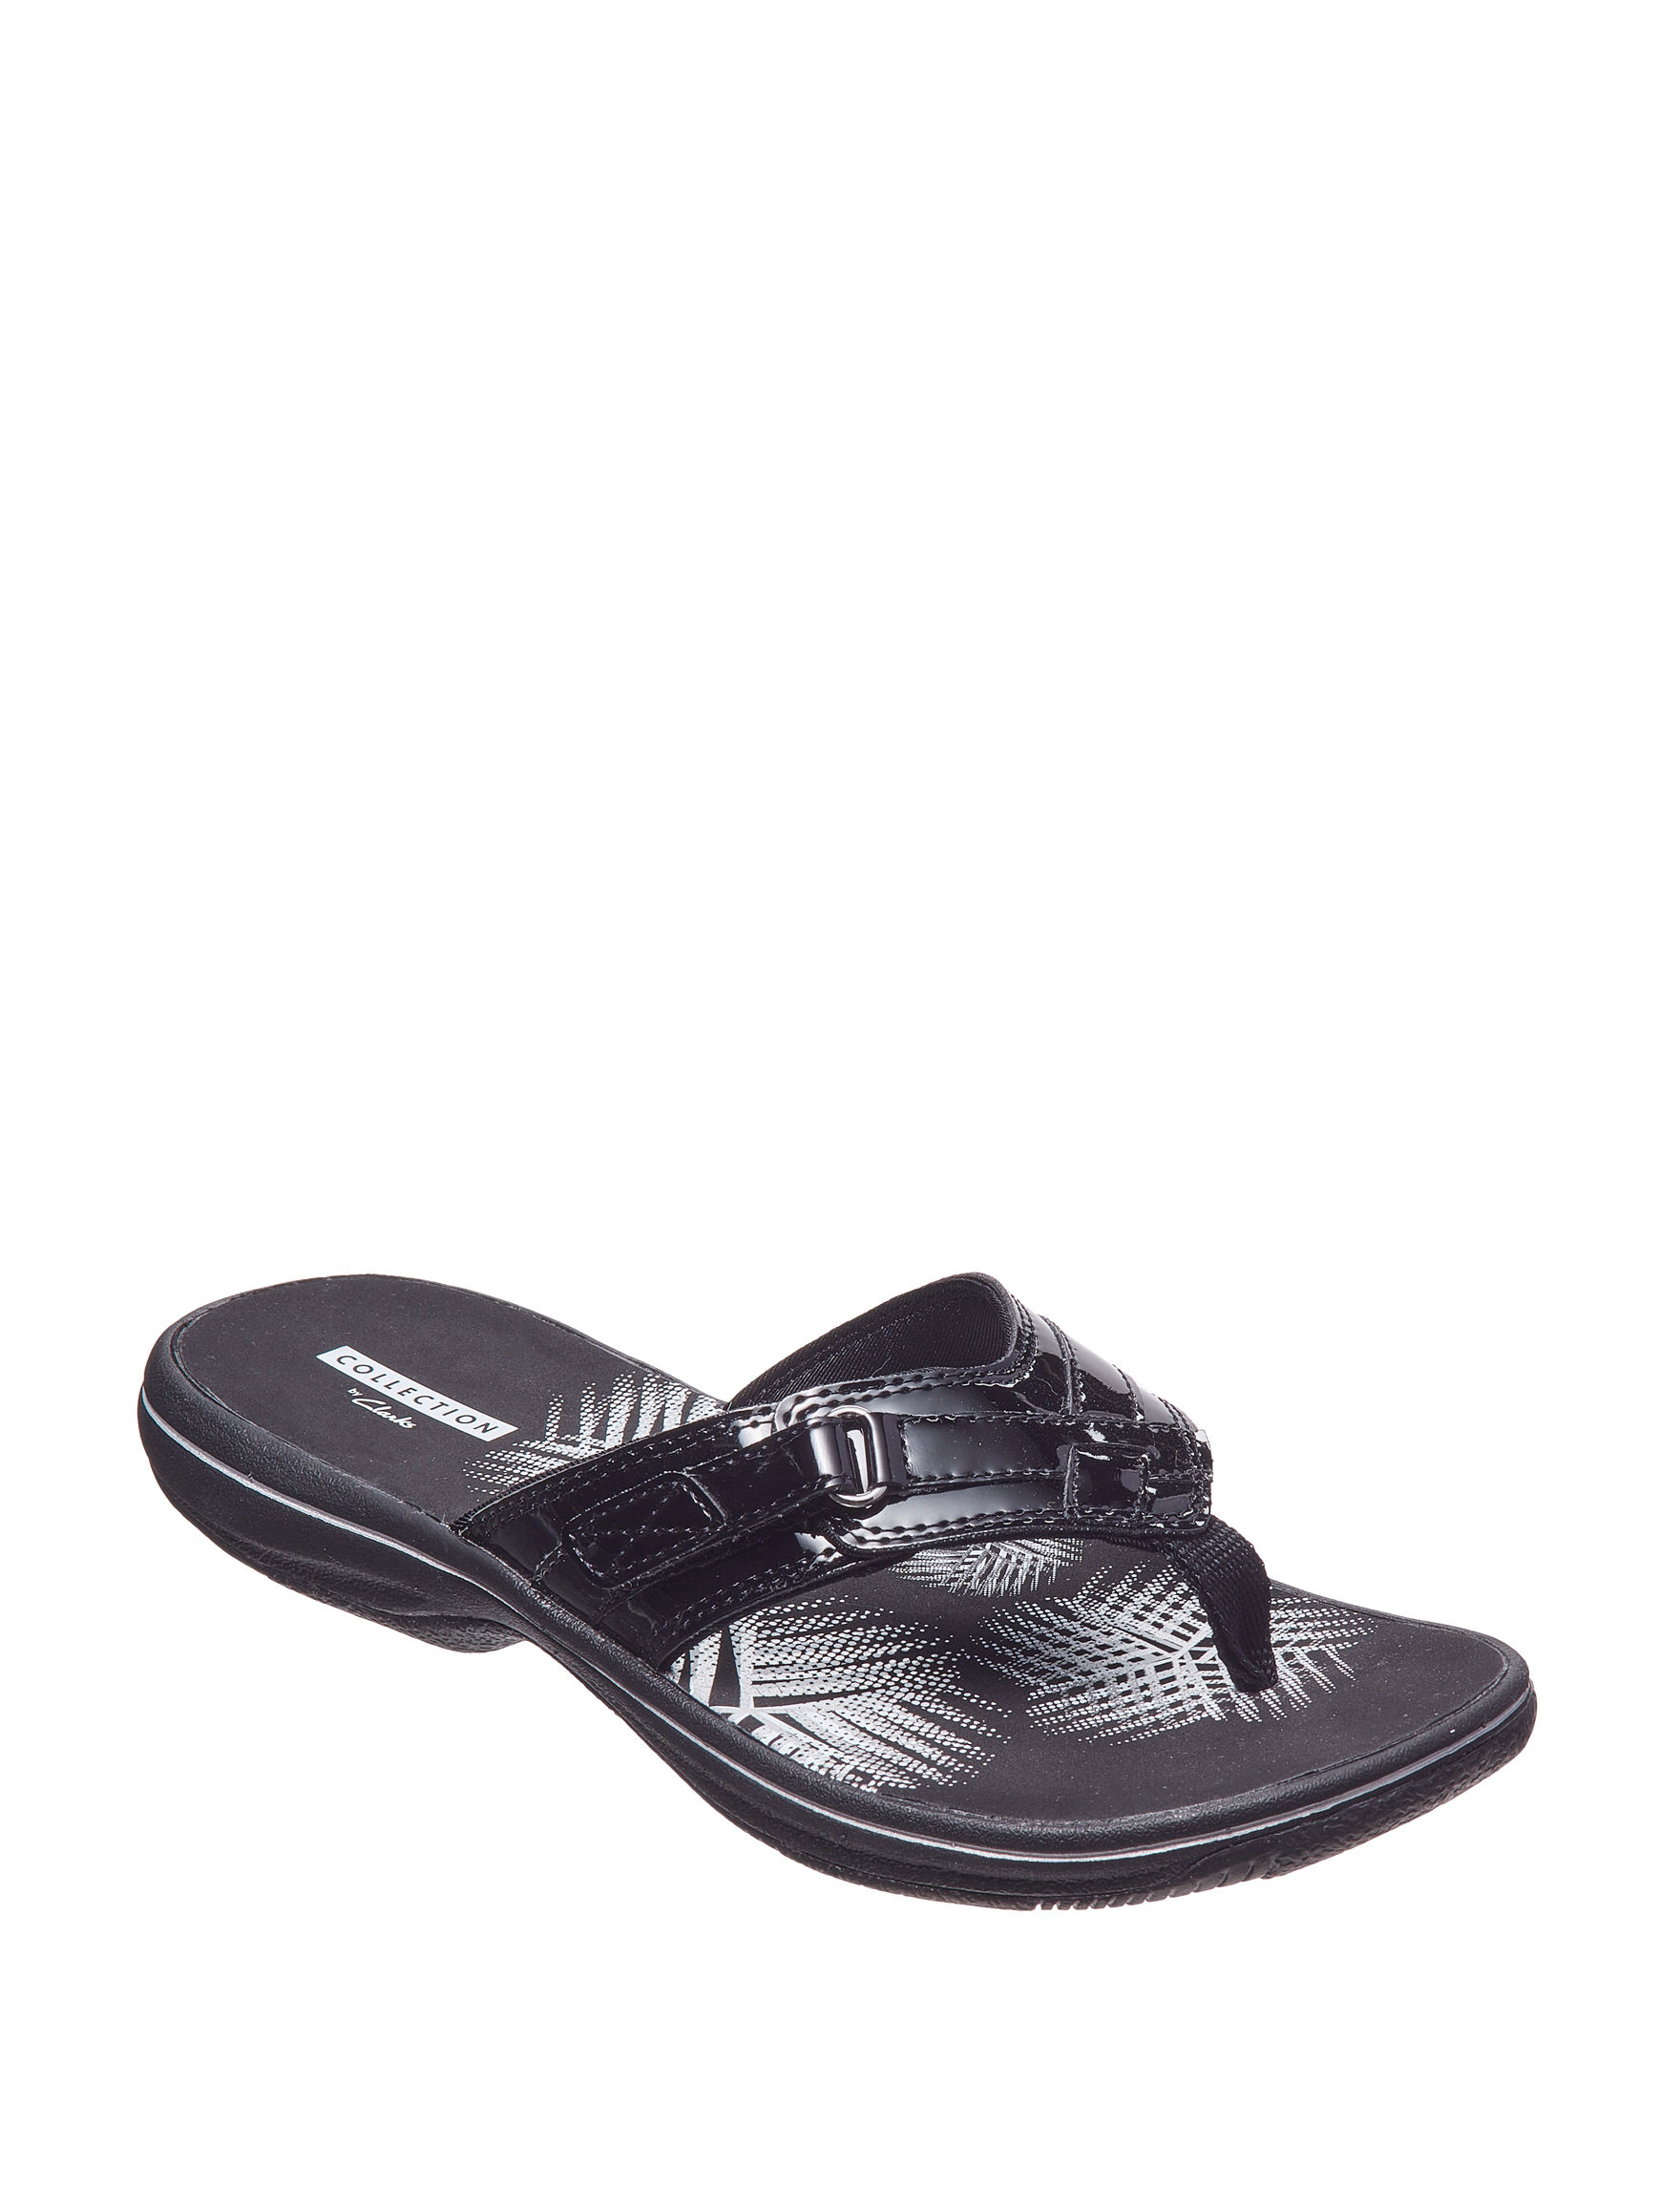 Clarks Black Comfort Shoes Flat Sandals Flip Flops